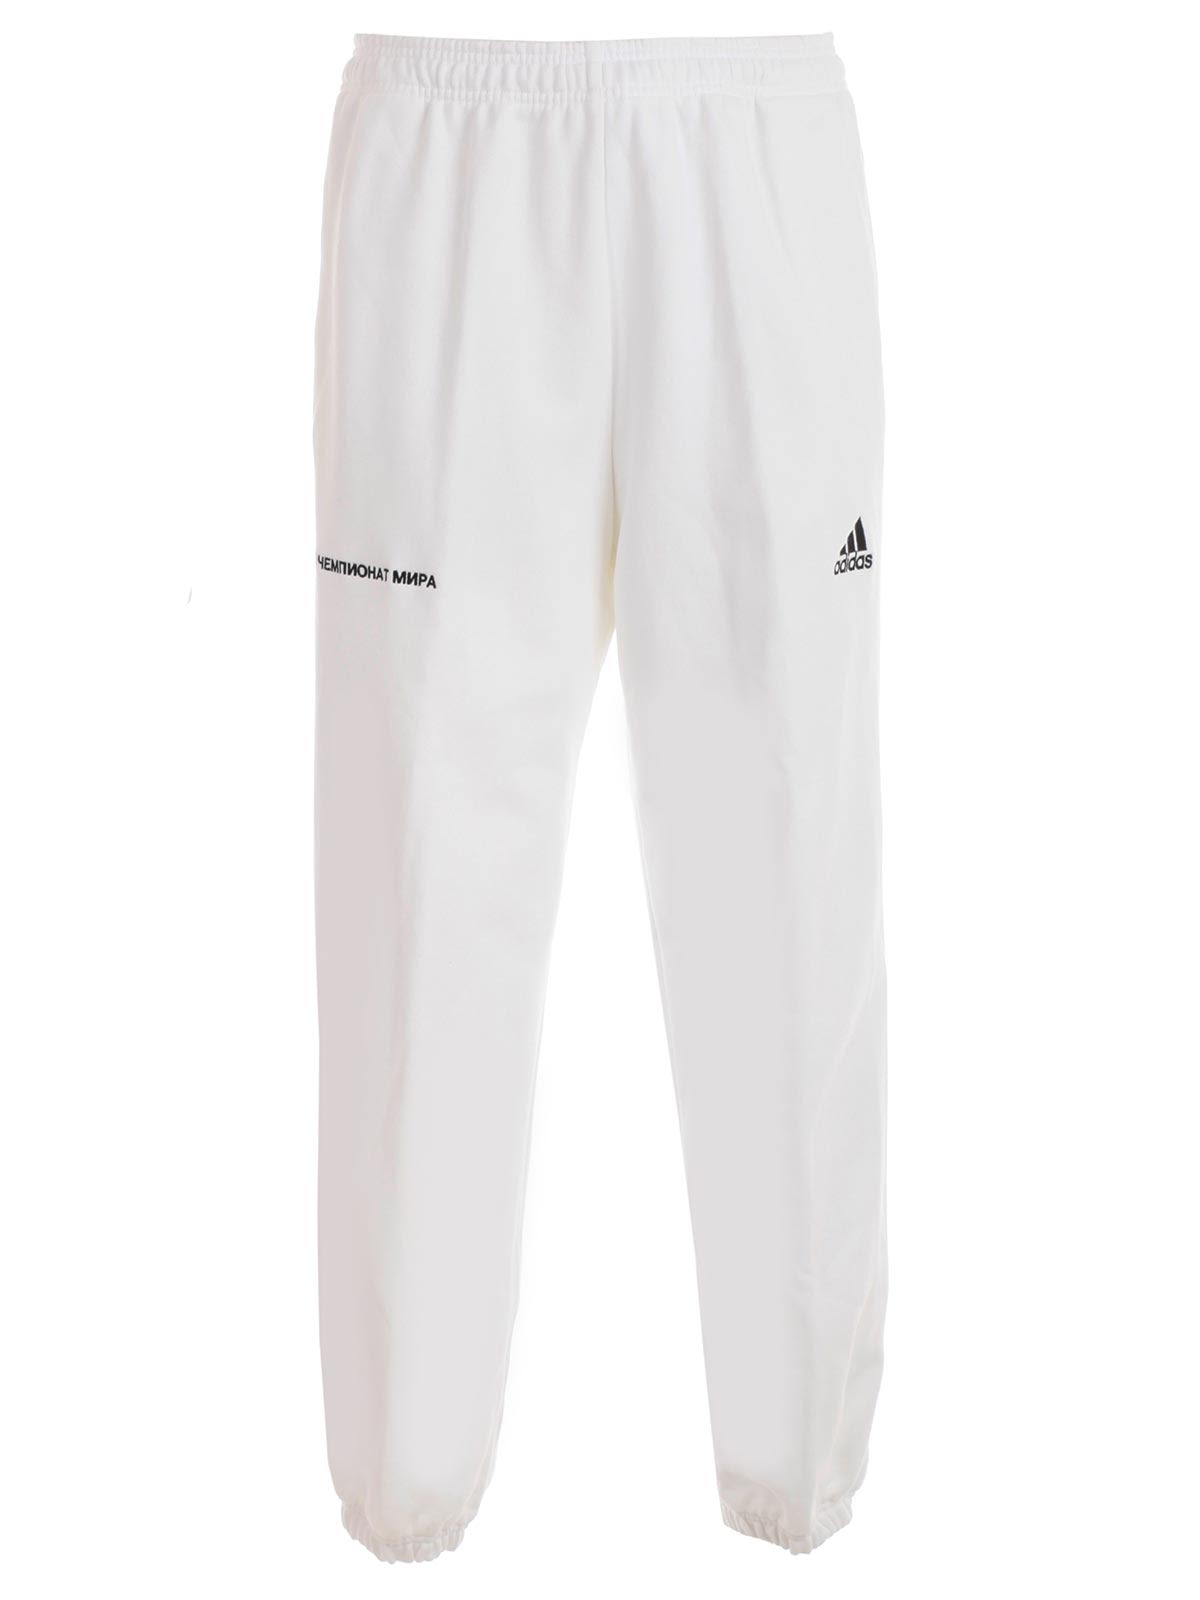 Gosha Rubchinskiy Pants ELASTICATED WAIST TRACK PANTS